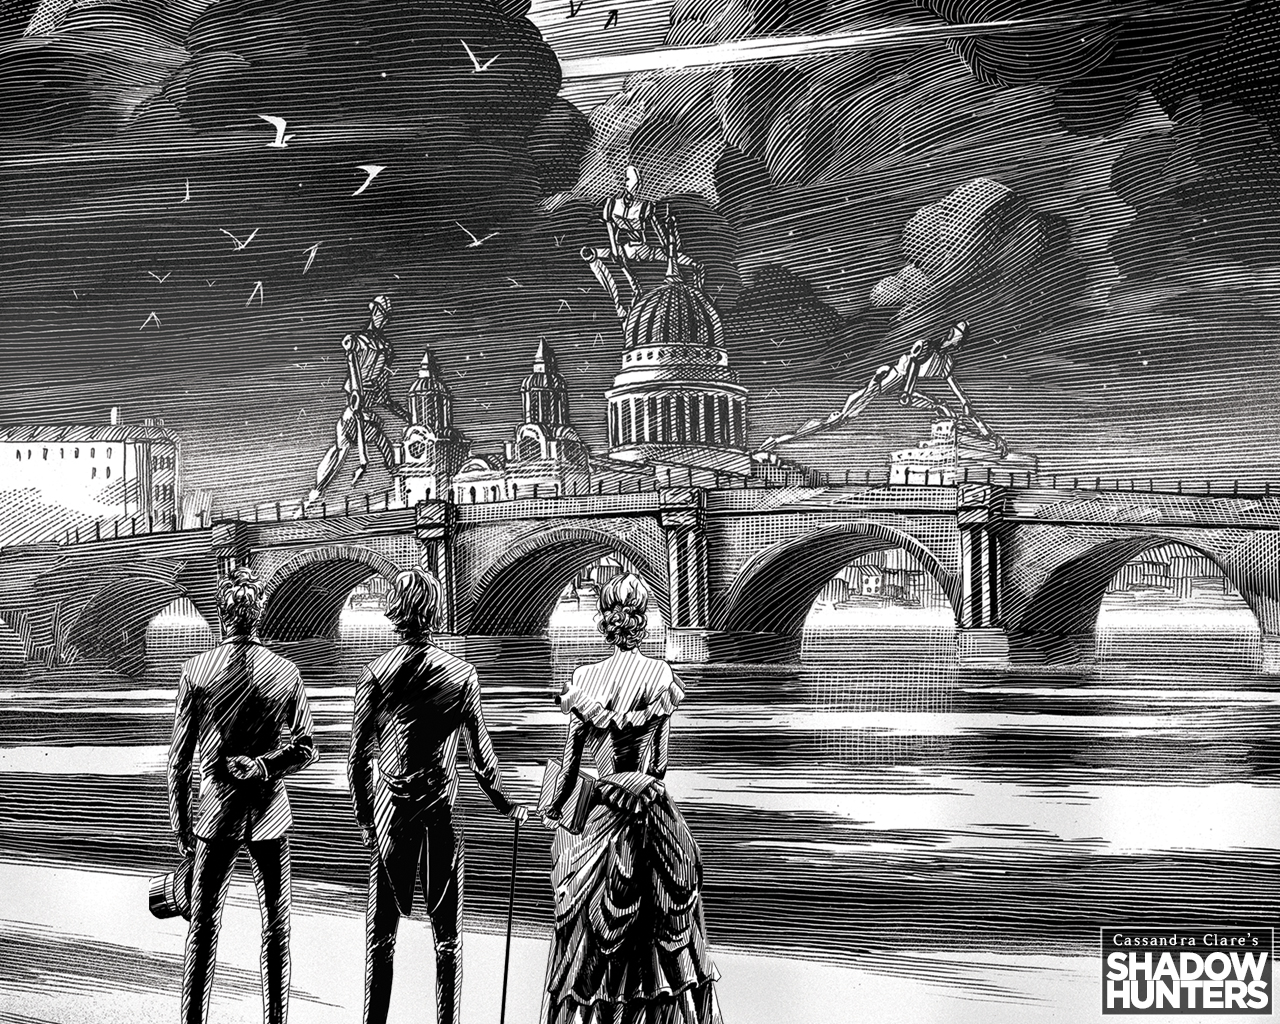 The Infernal Devices Quotes Wallpaper The Infernal Devices Shadowhunters